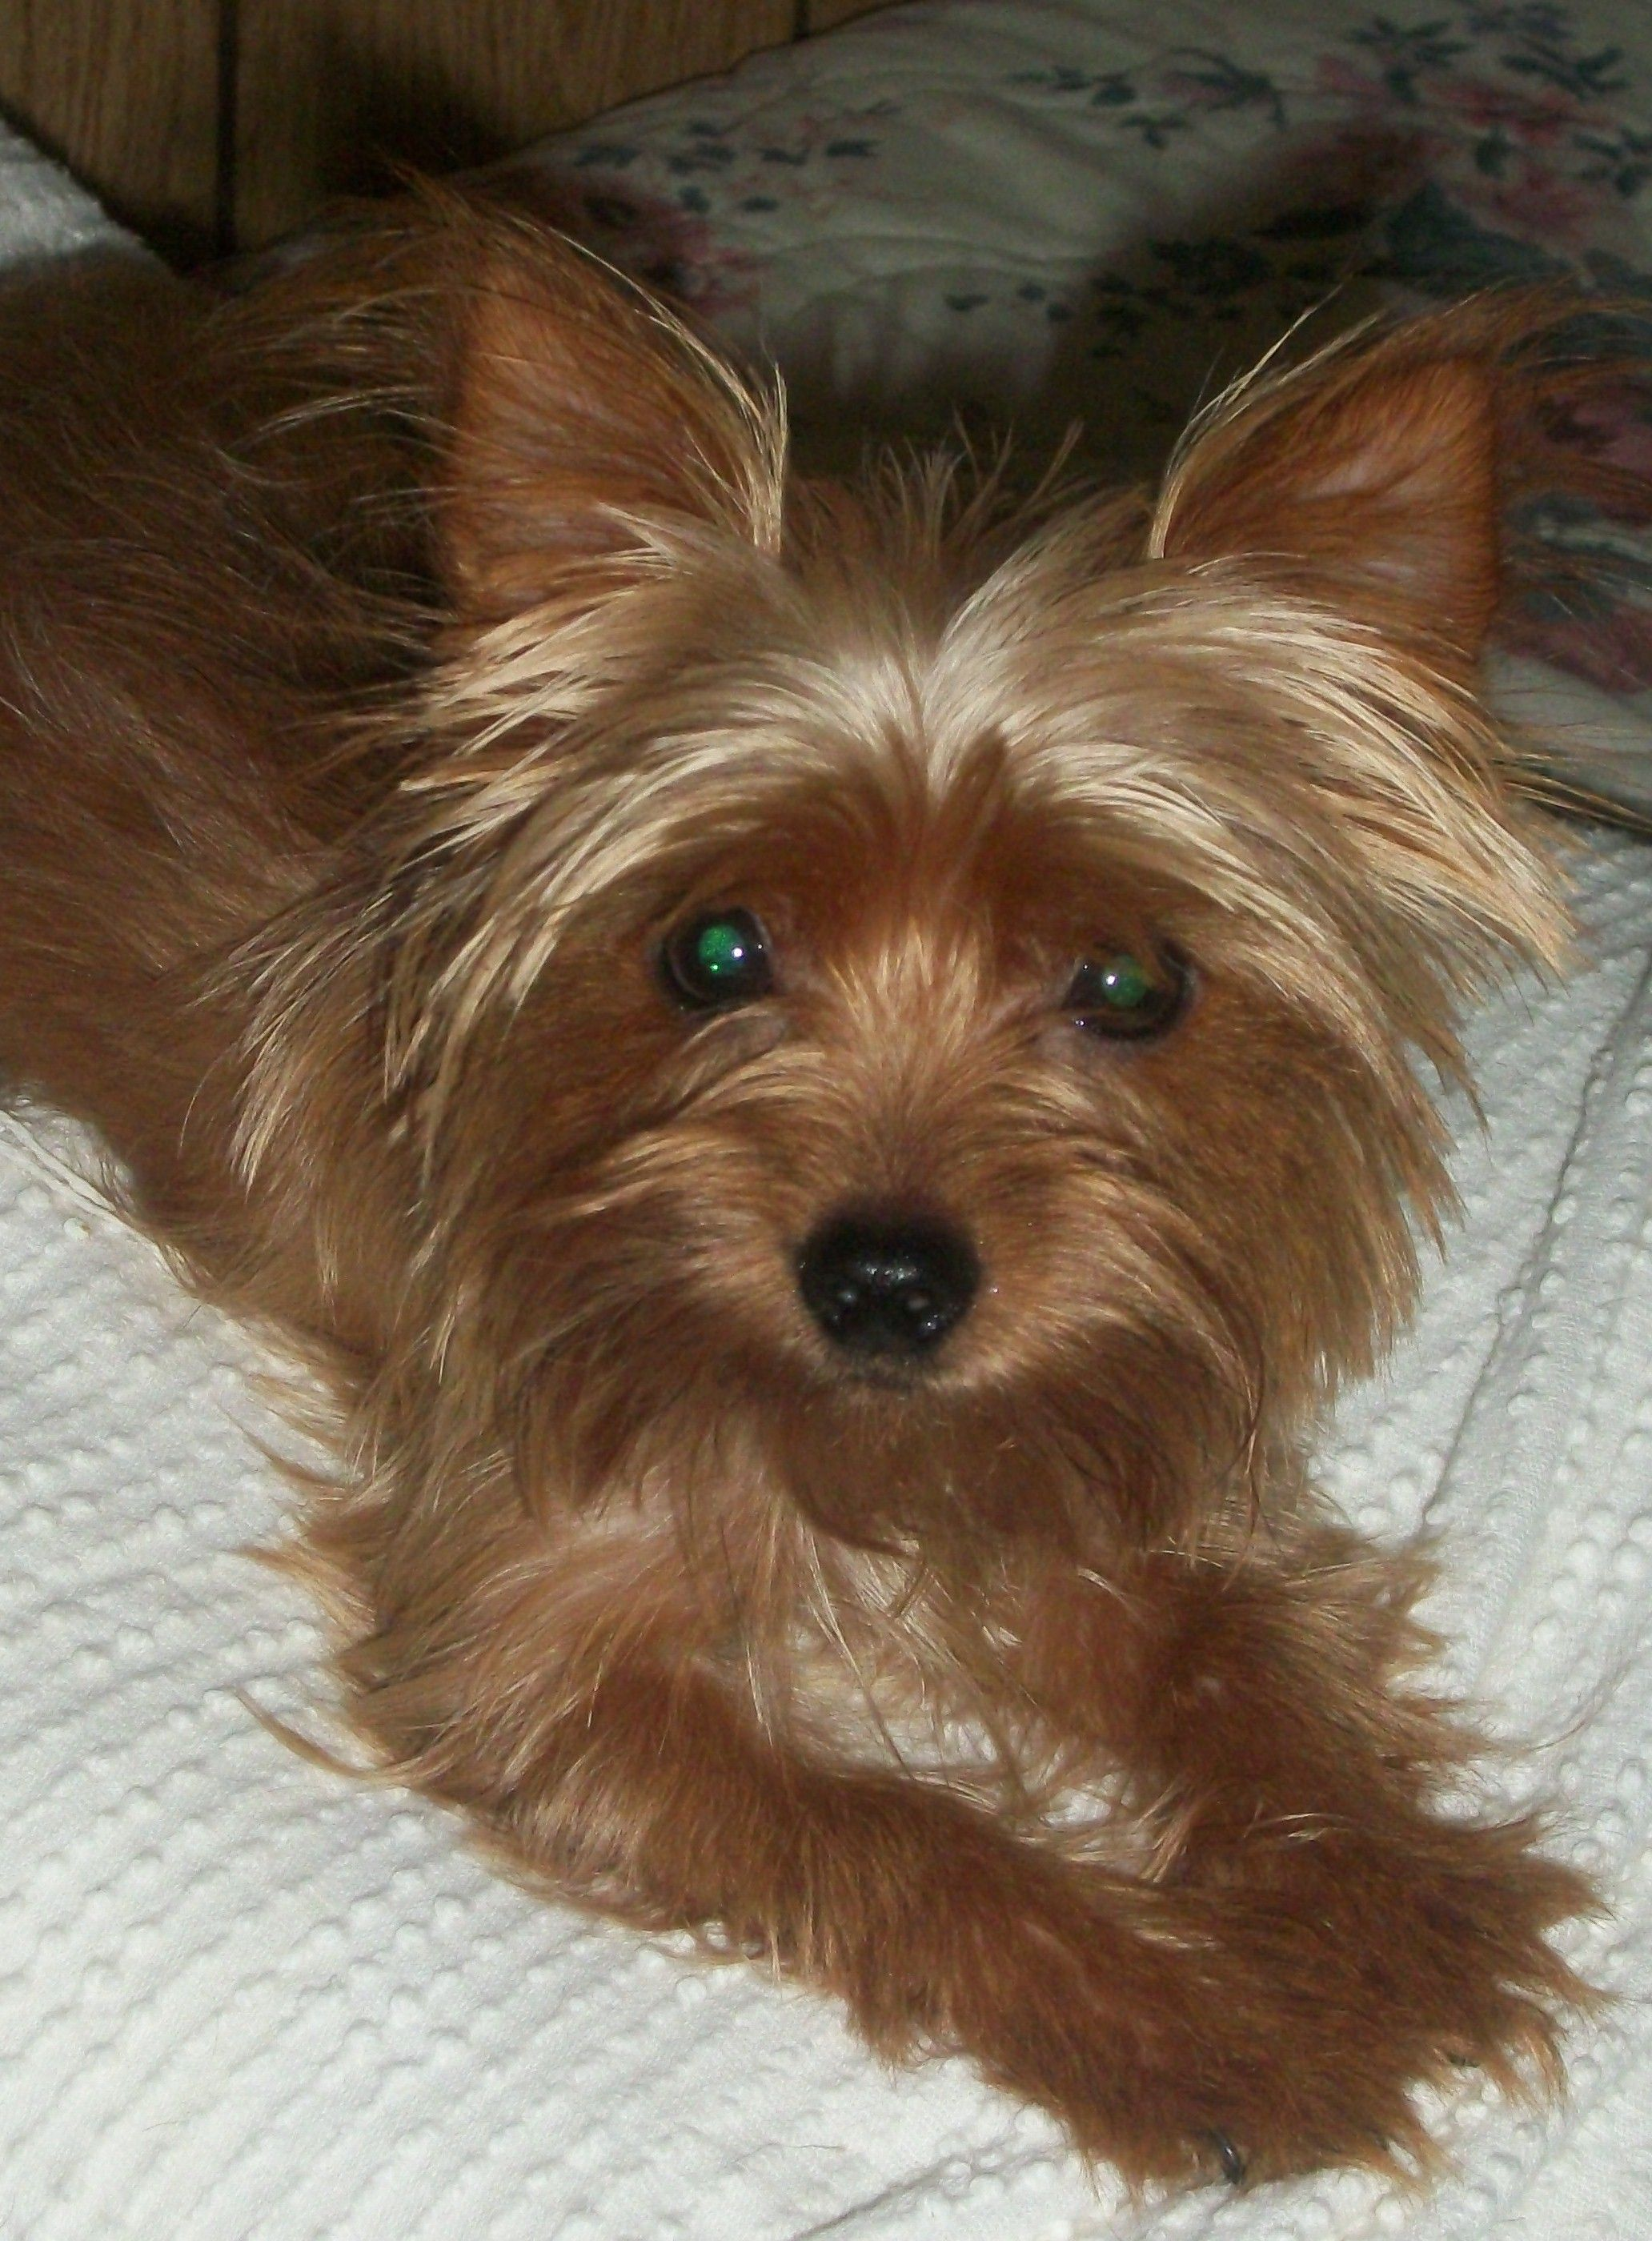 I Have 5 Yorkies This Is One Of My Other Teacup Blonde Yorkies Her Name Is Angel Starr Trent We Call Her Starr She Is So Lovable Yorkie Small Dogs Fur Babies